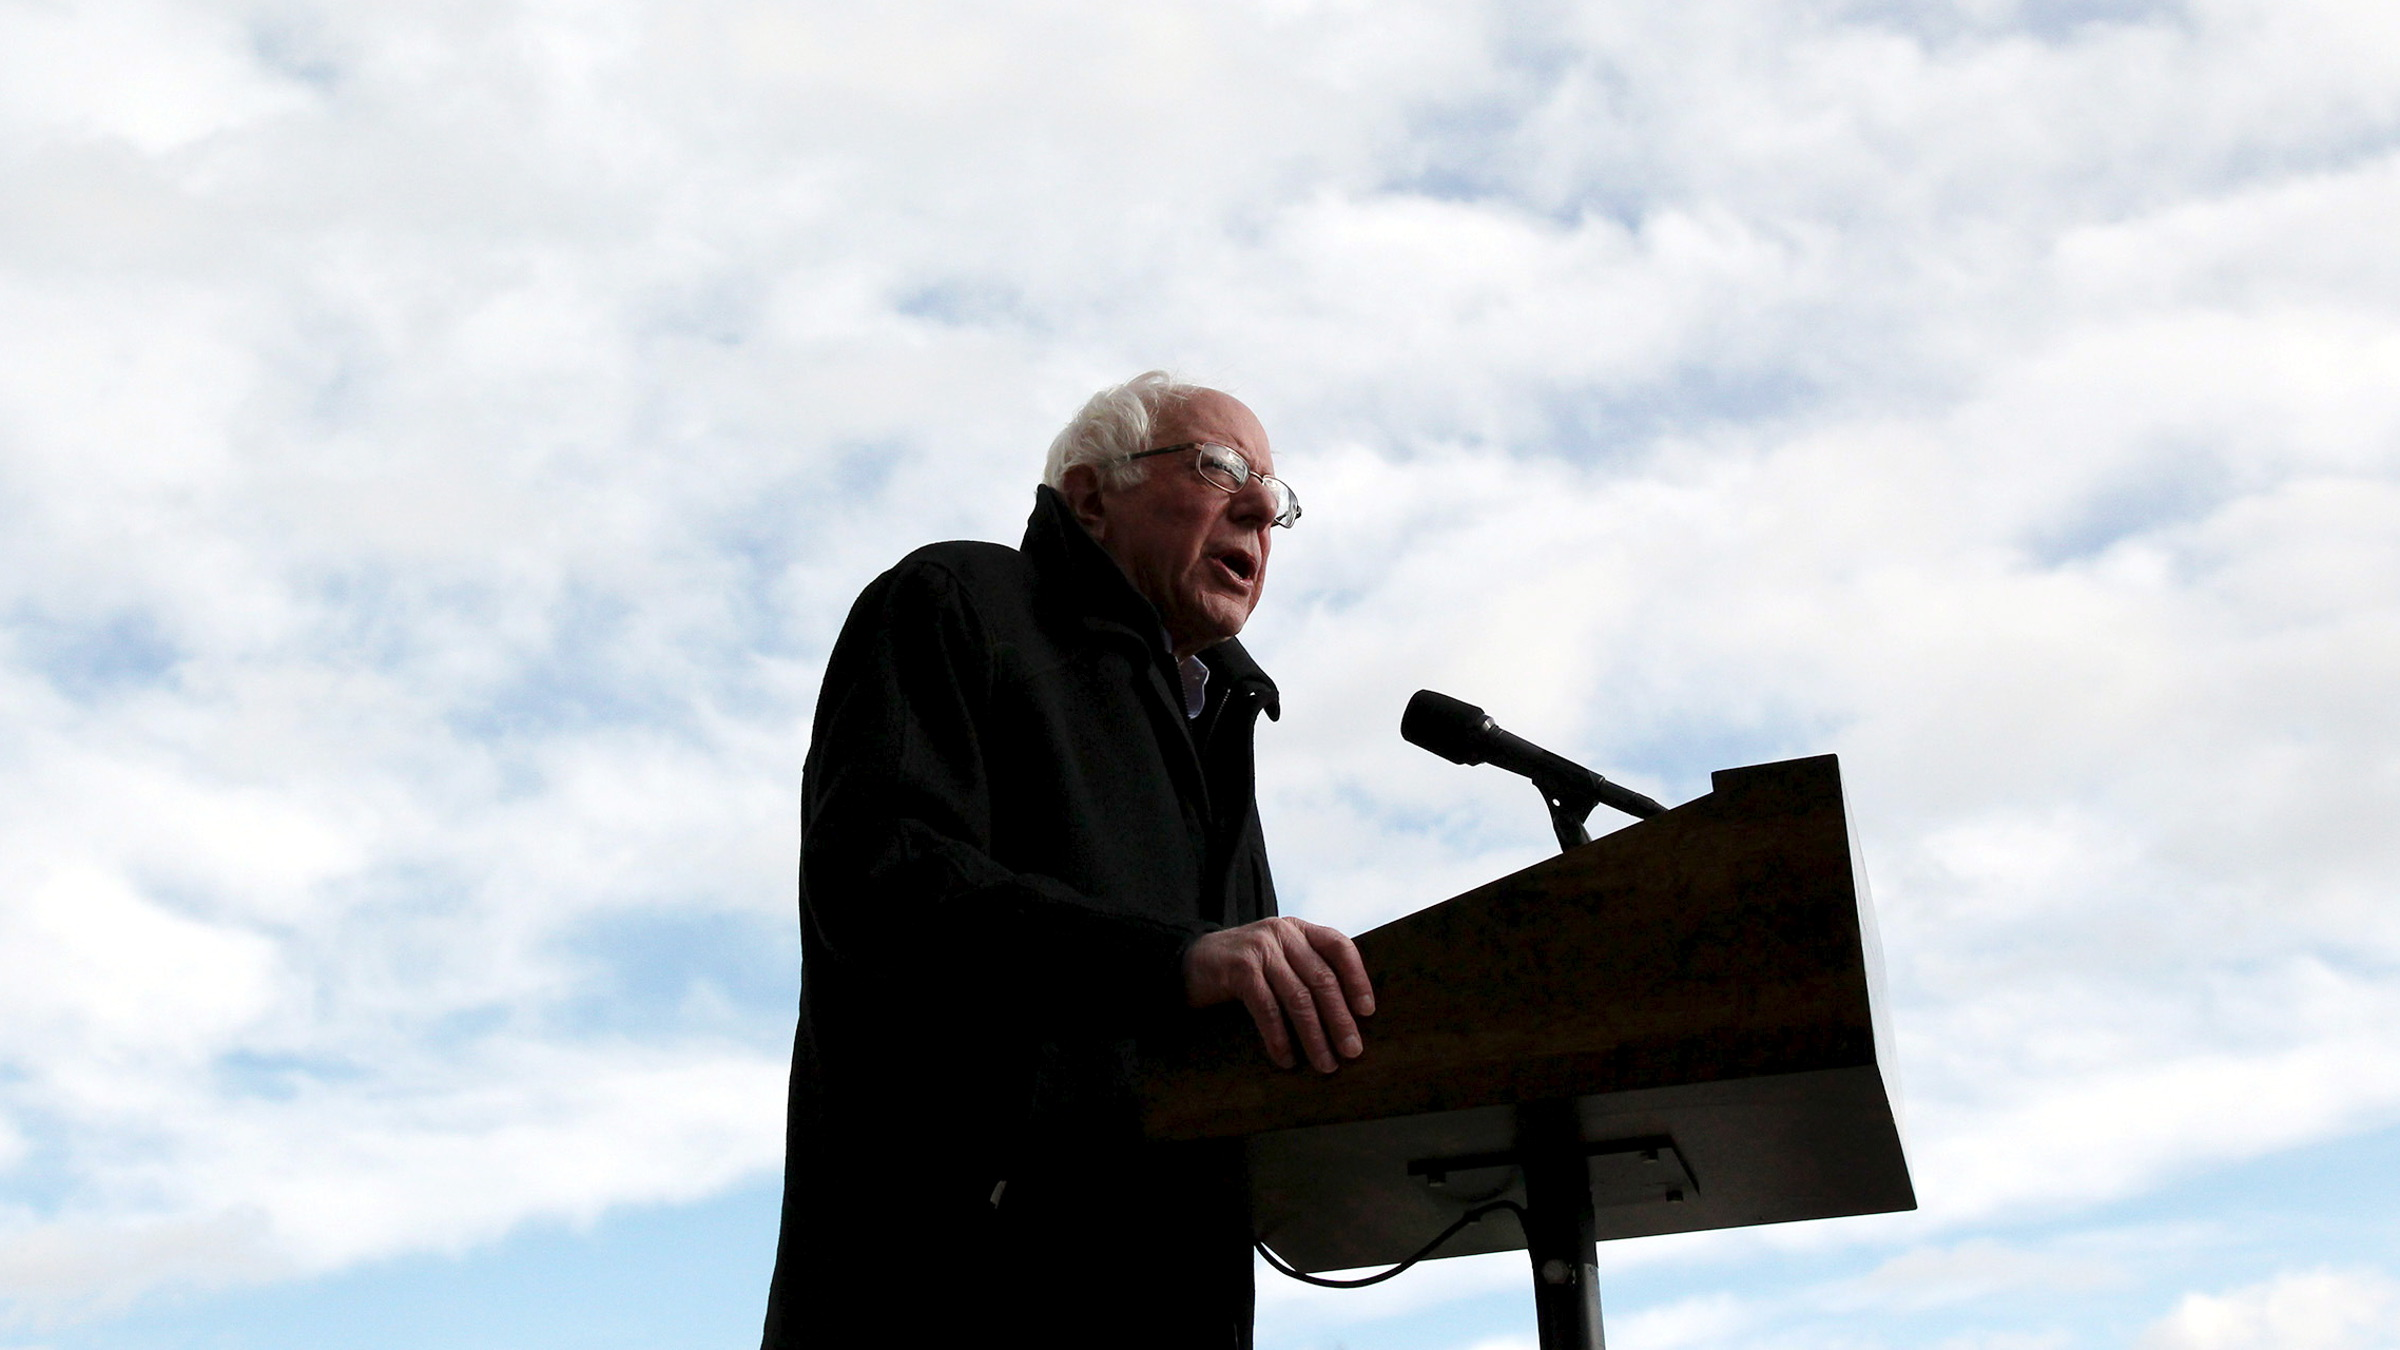 U.S. Democratic presidential candidate and Senator Bernie Sanders speaks to an overflow crowd before heading inside for a campaign rally in Amherst, Massachusetts January 2, 2016.